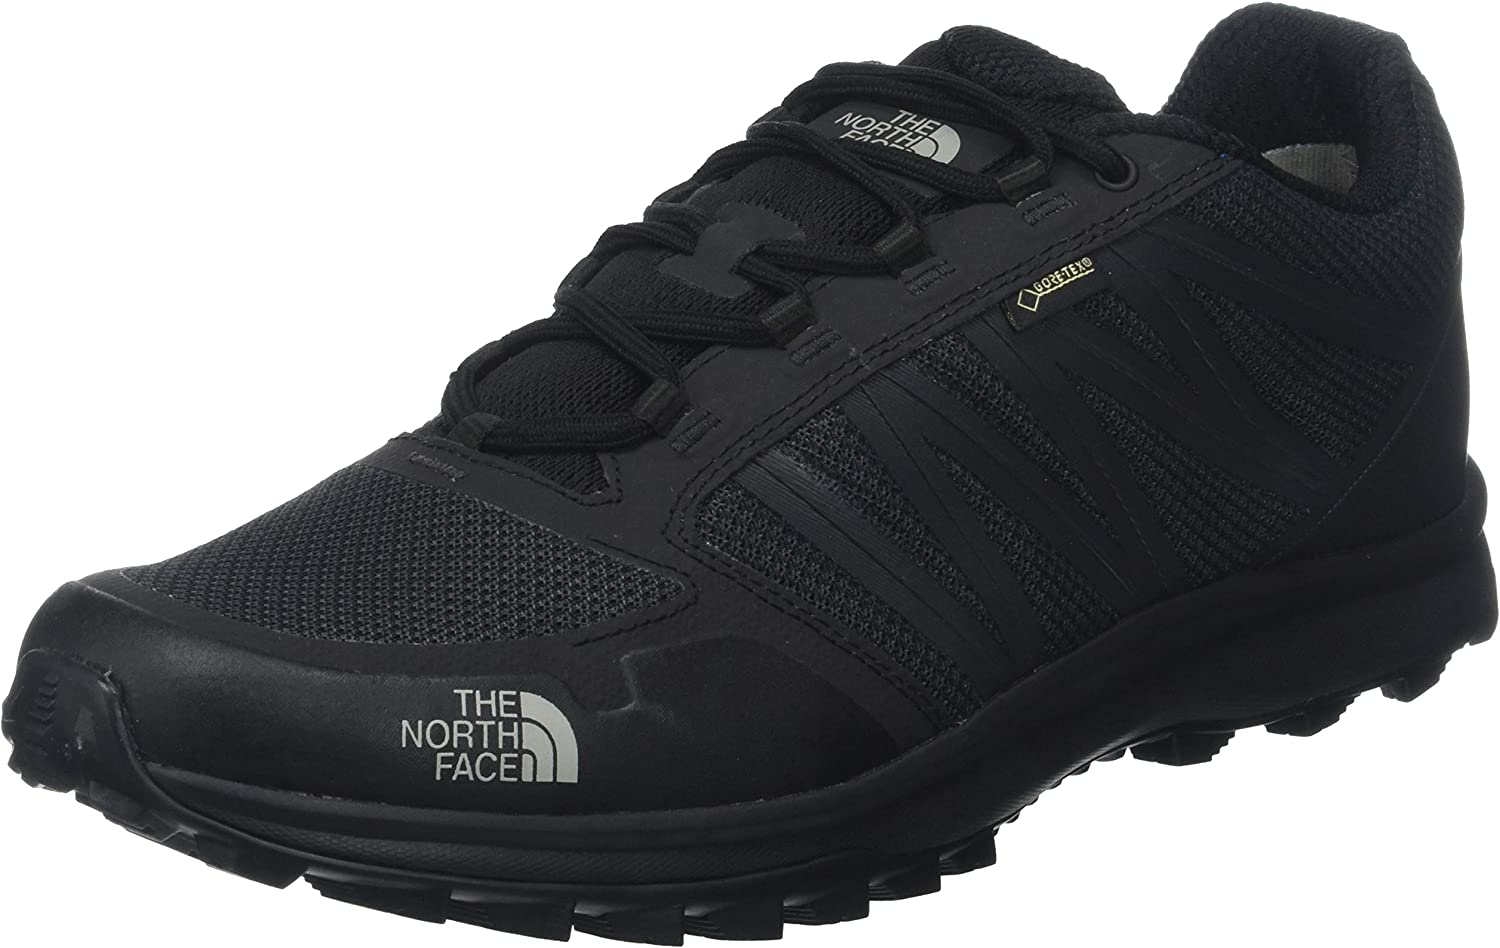 The North Face Men's Litewave Fast Pack Gore-TEX Shoe